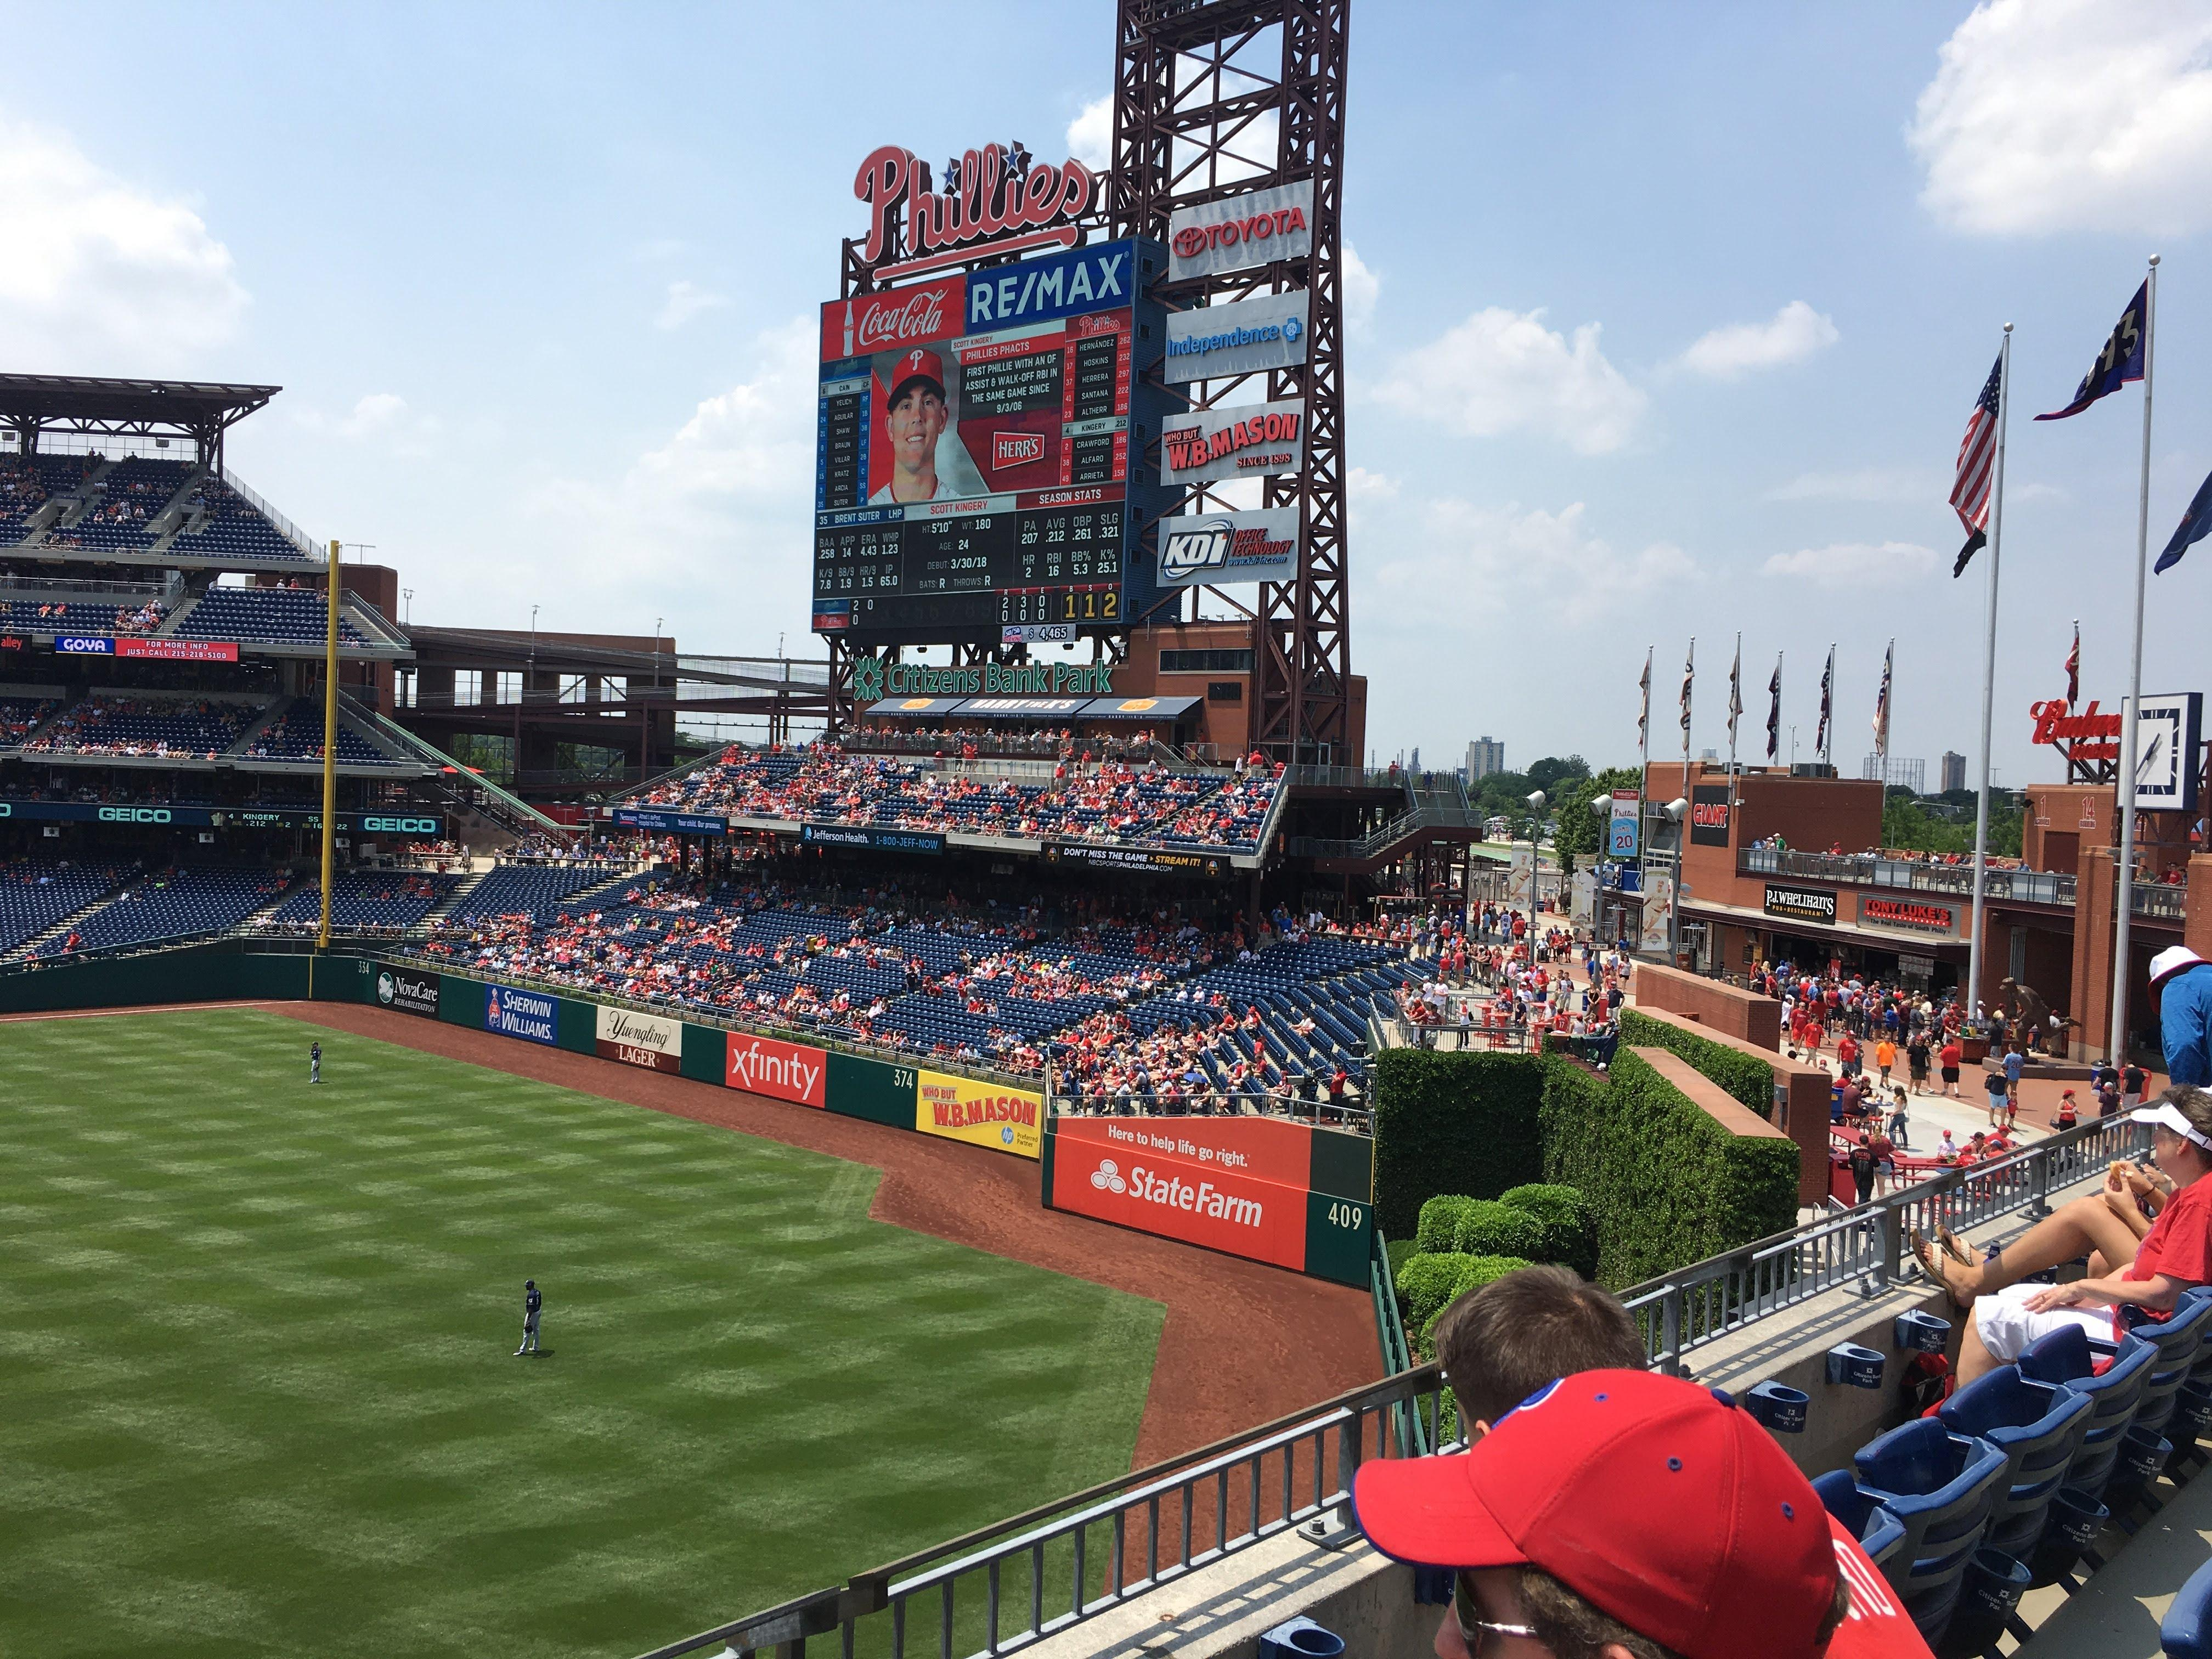 Citizens Bank Park Section 201 Row 3 Seat 24